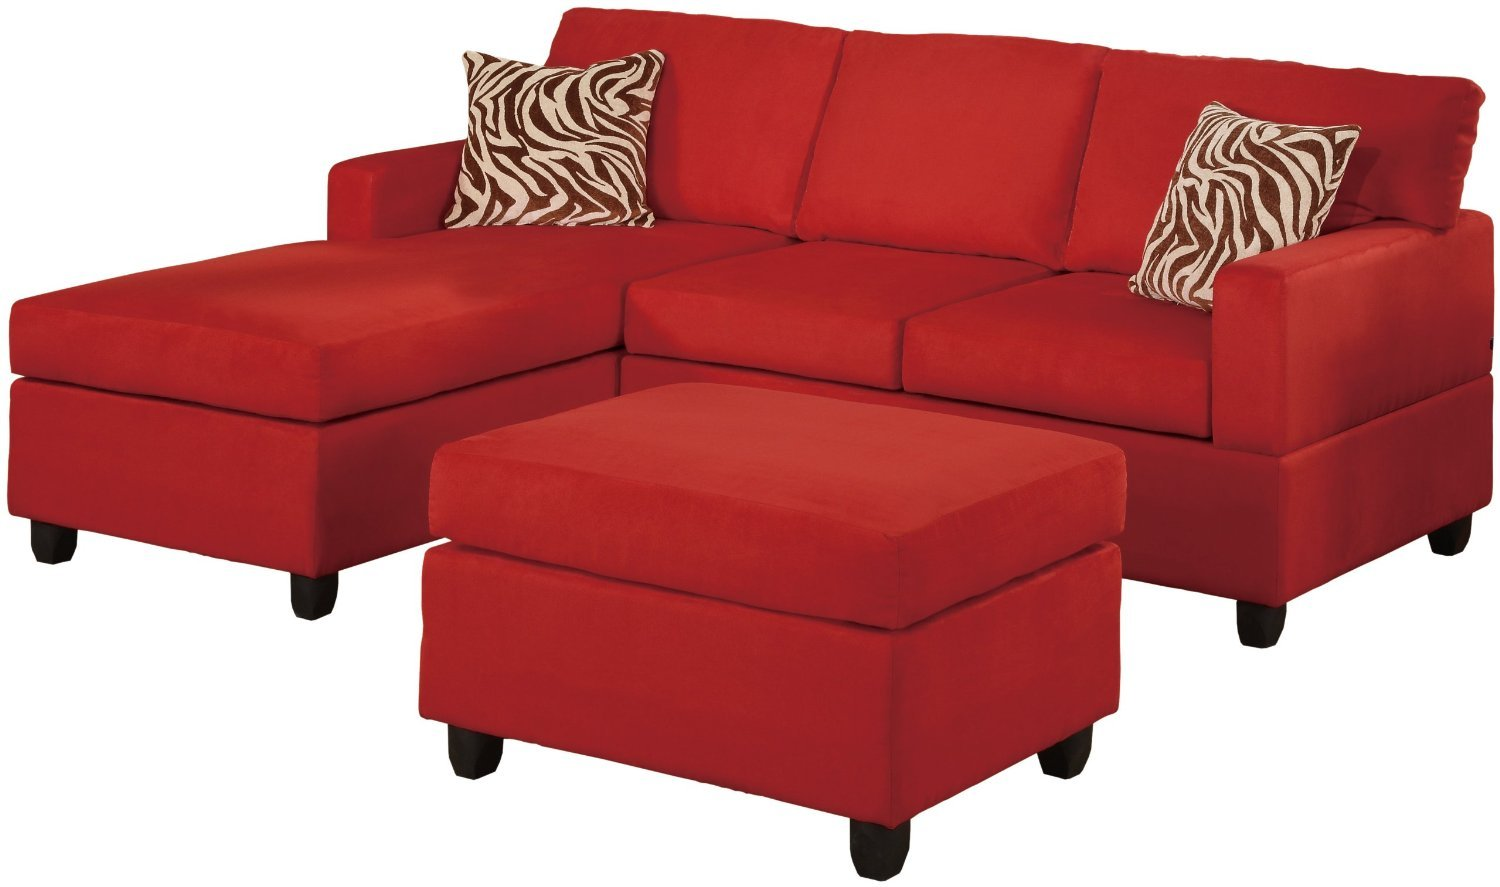 Microfiber sectional sofa set 3 piece red reversible for Chaise lounge couch set